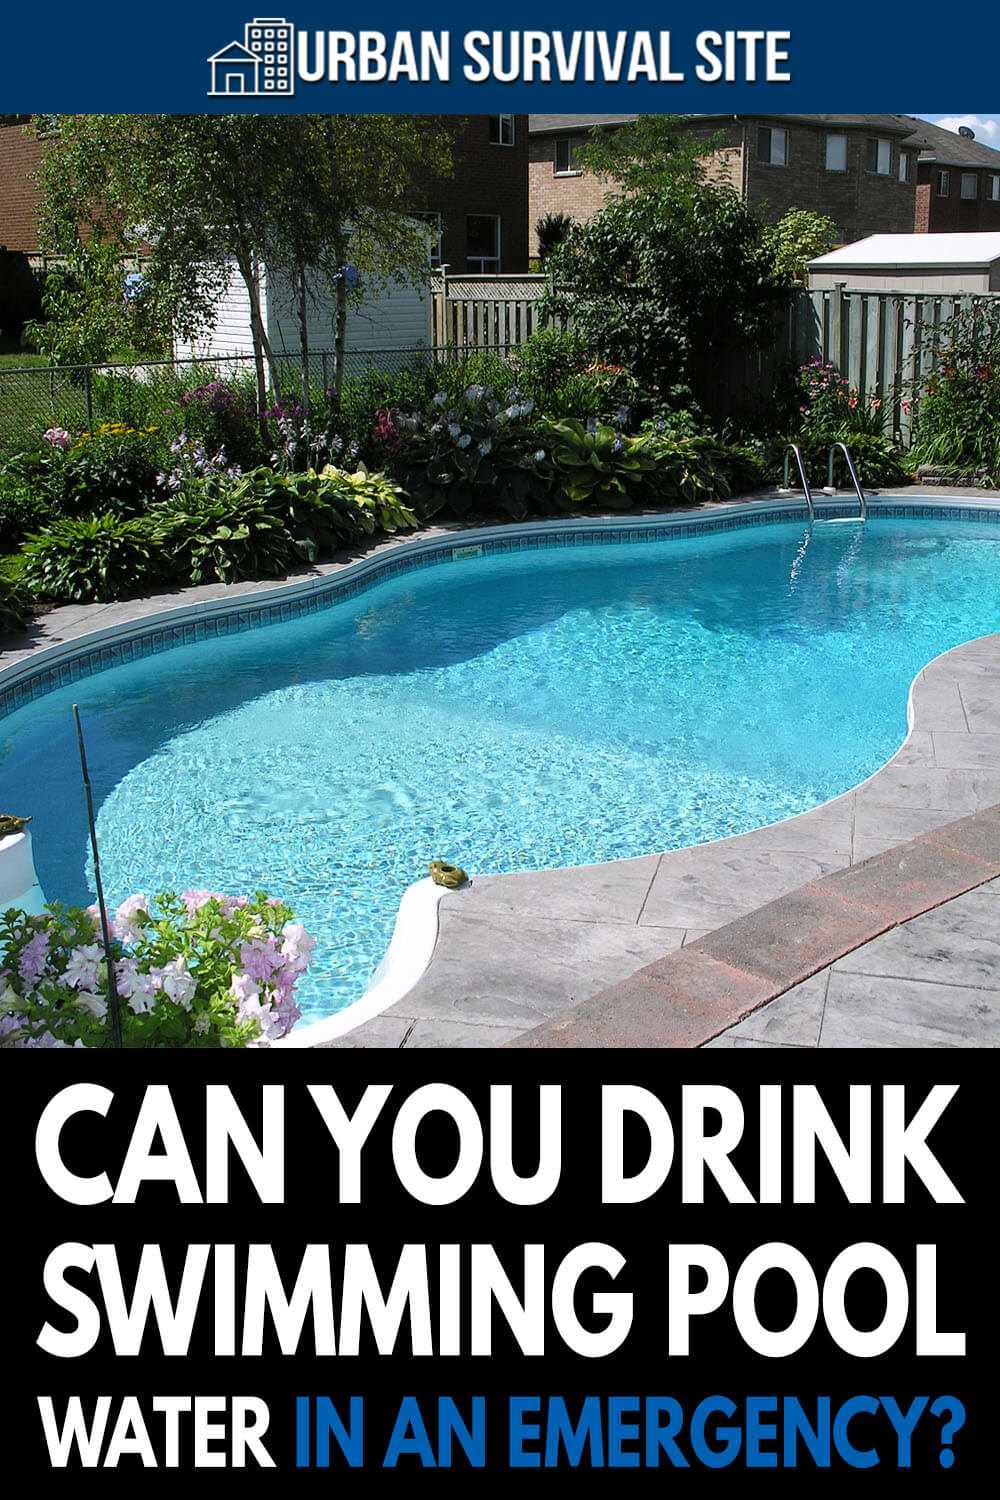 Can You Drink Swimming Pool Water In An Emergency?